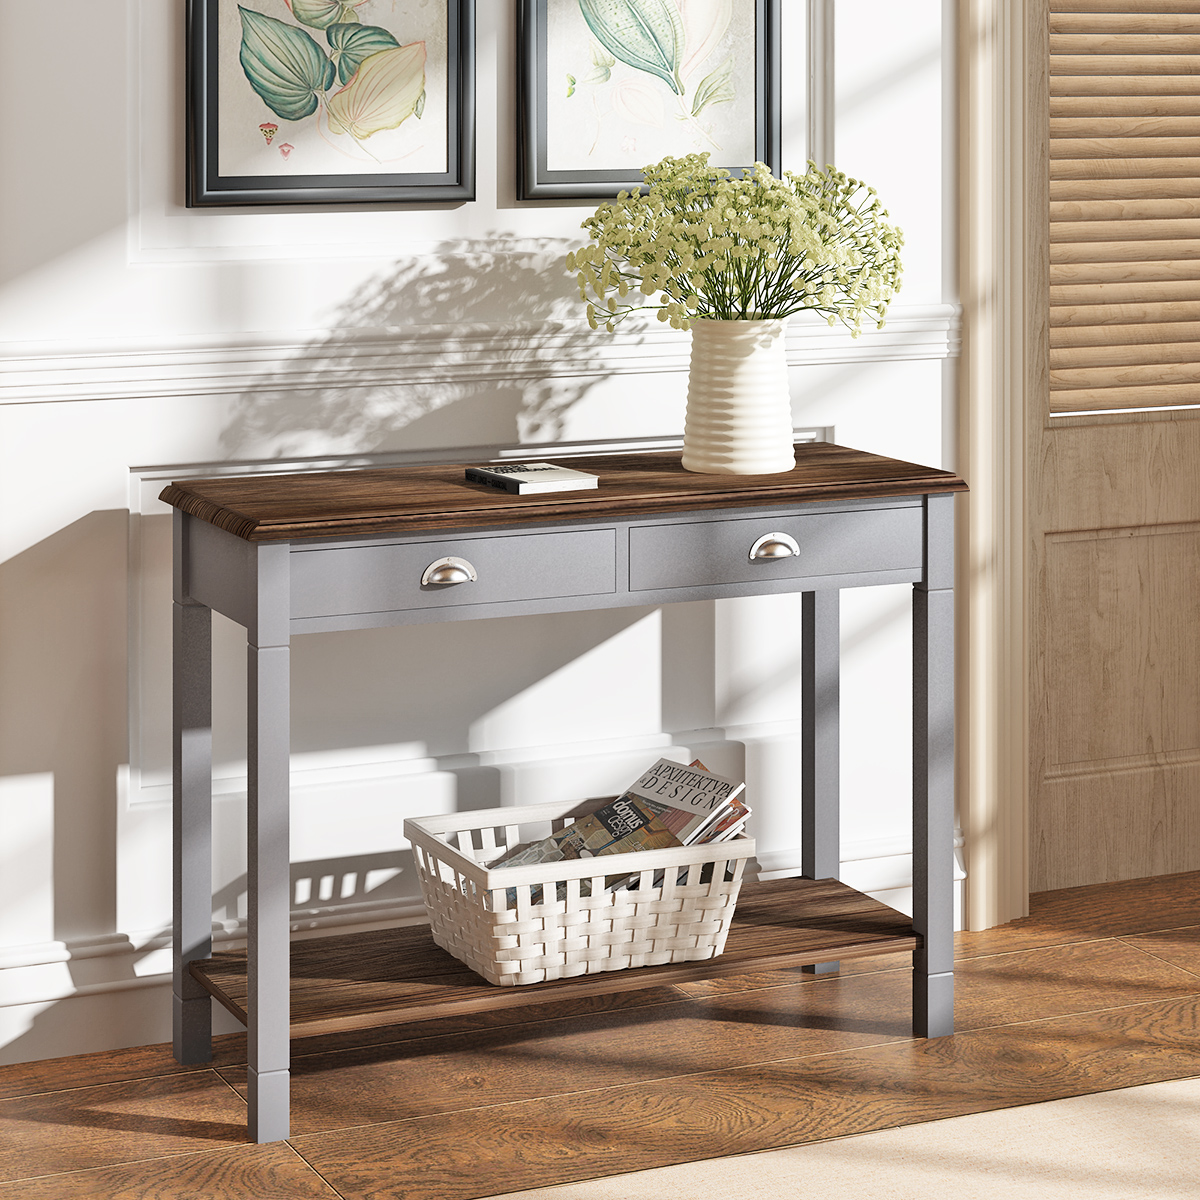 Panana Moderm Oak Console/Dressing /Telephone/Hallway Table Desk With Drawer Shelf Storage Cabinet